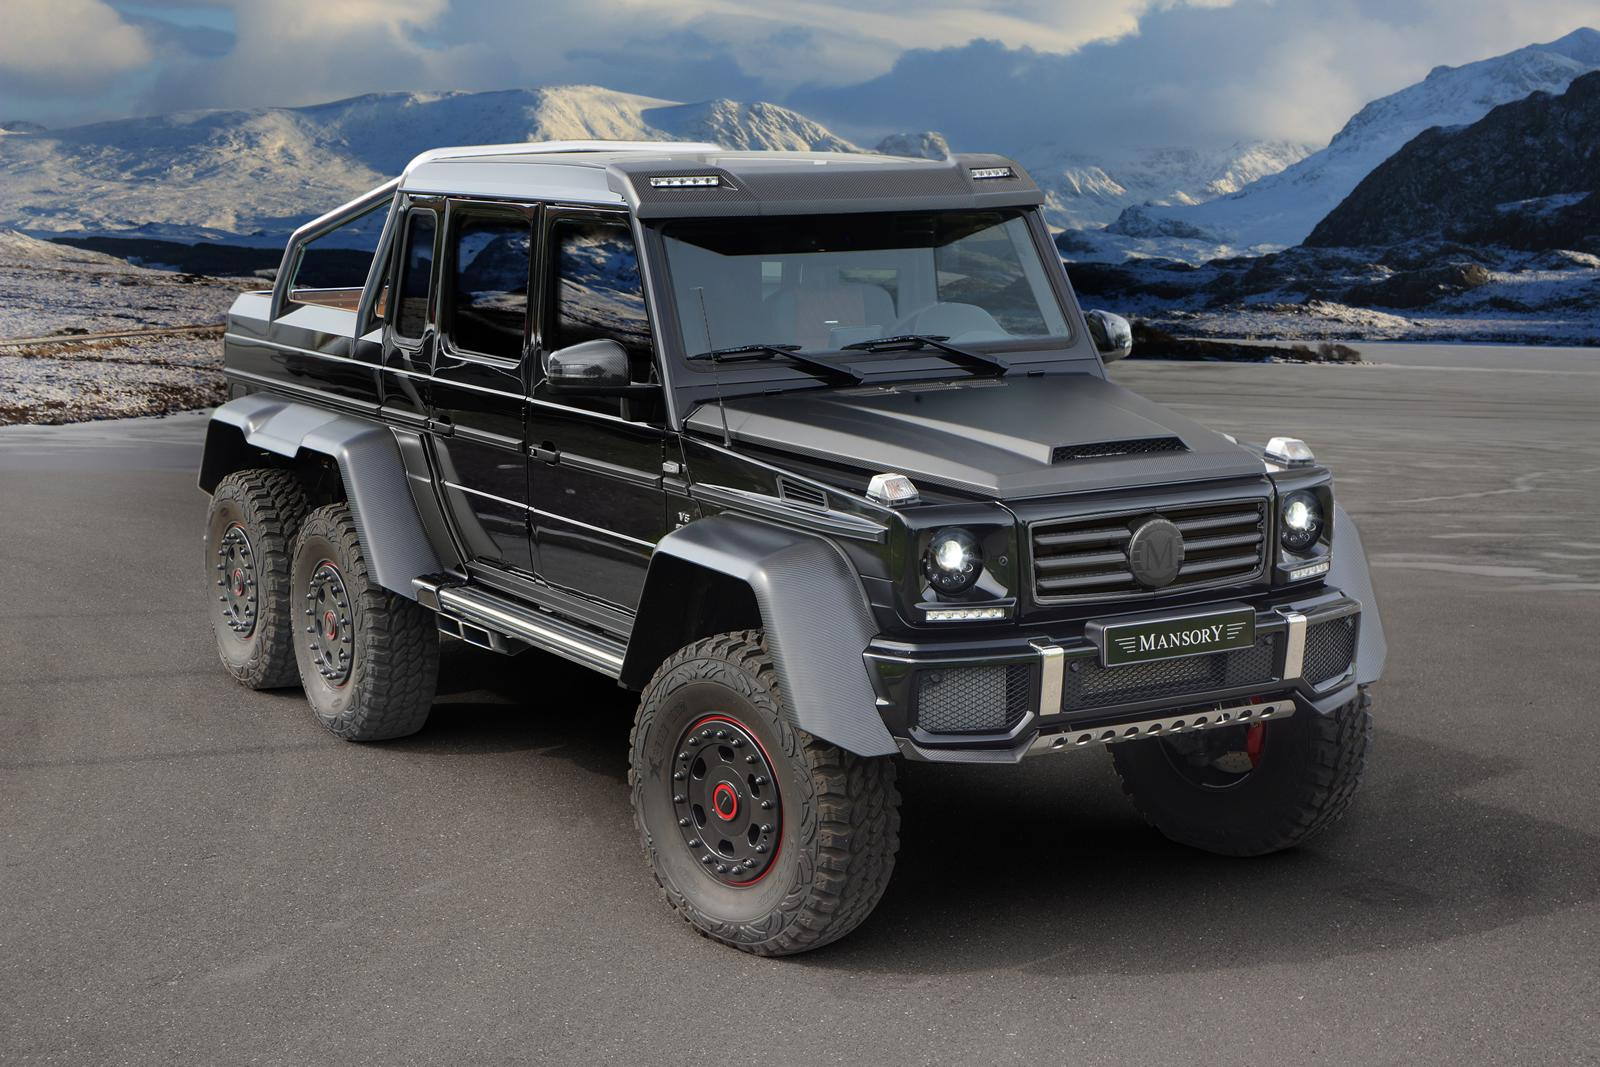 mansory mercedes g63 amg 6x6: no more wheels, much more power